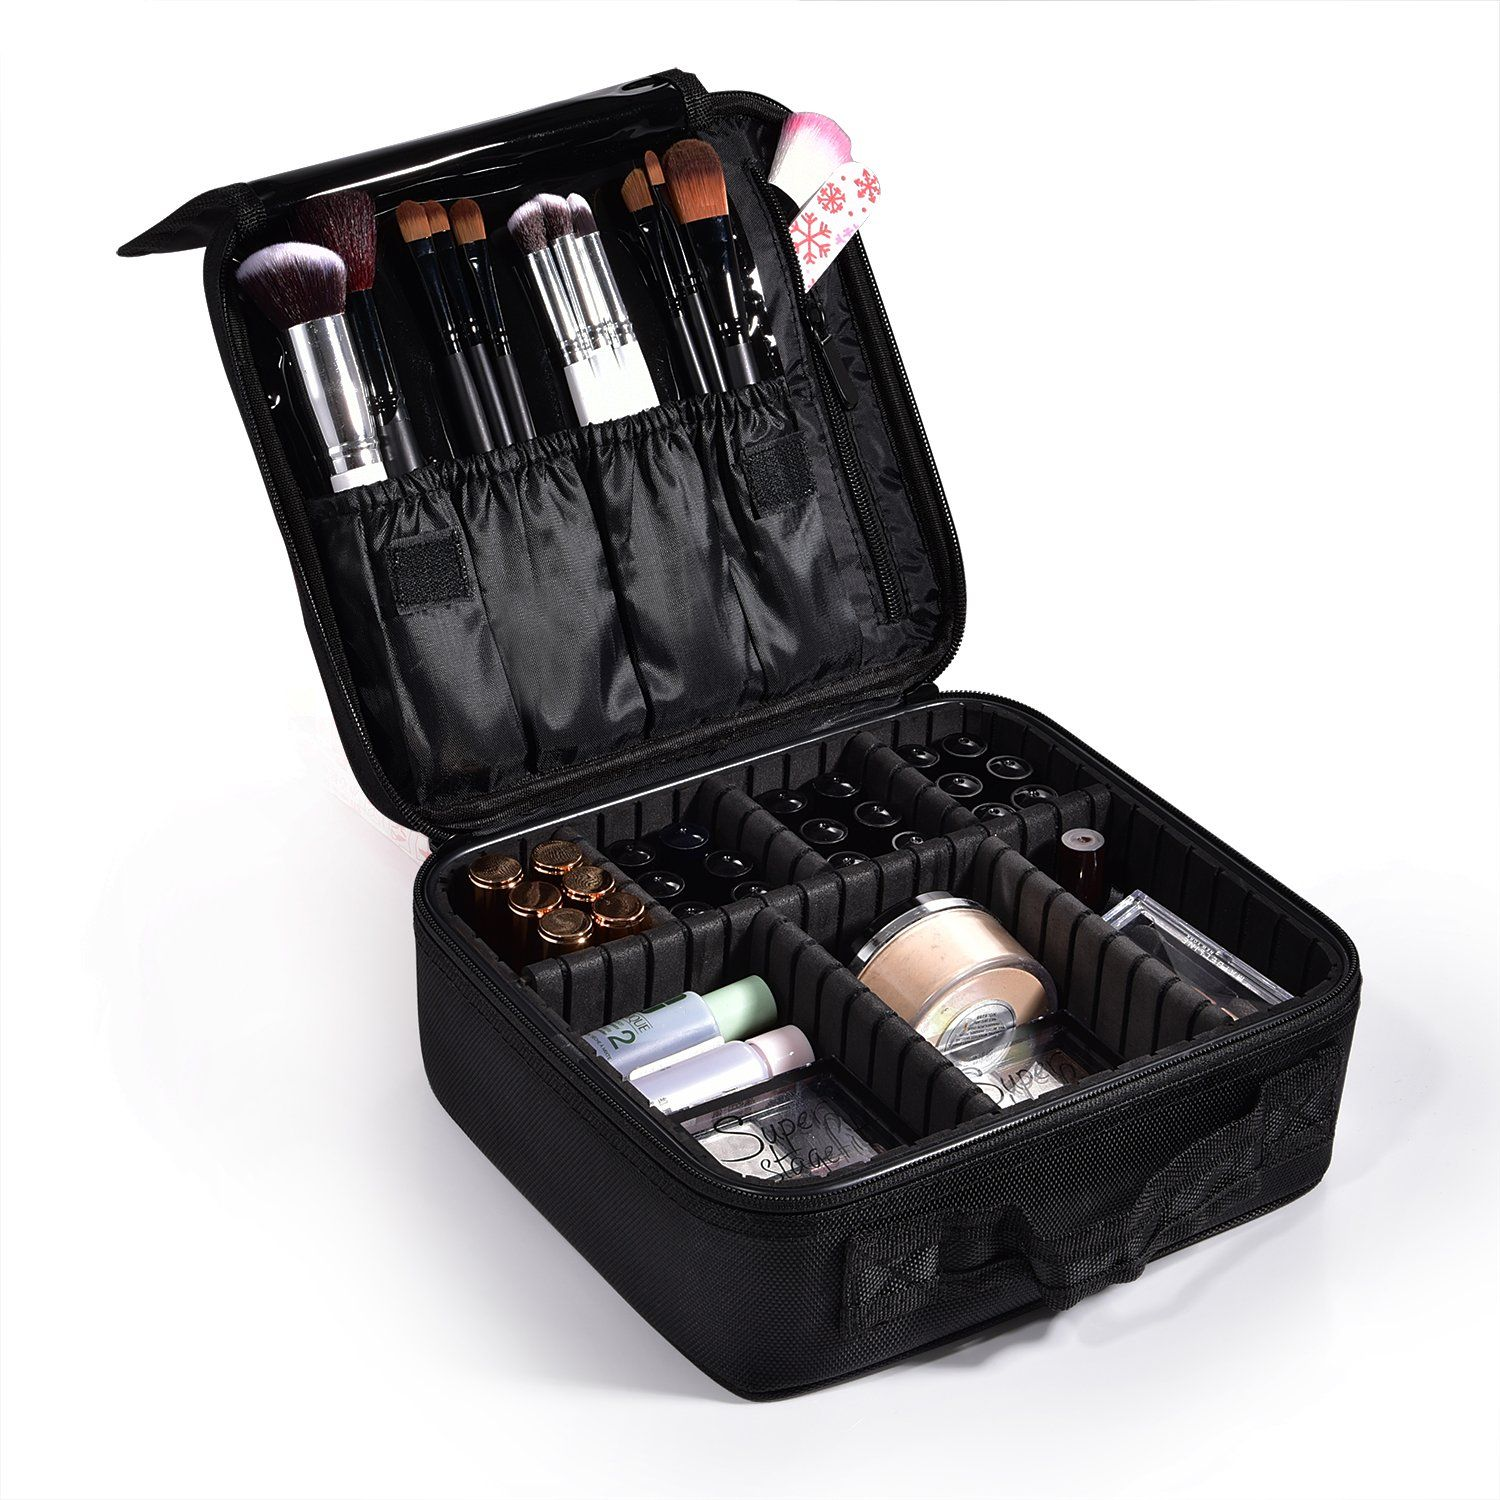 Cosmetic Travel Bag Makeup Organizer  Make Up Bags With